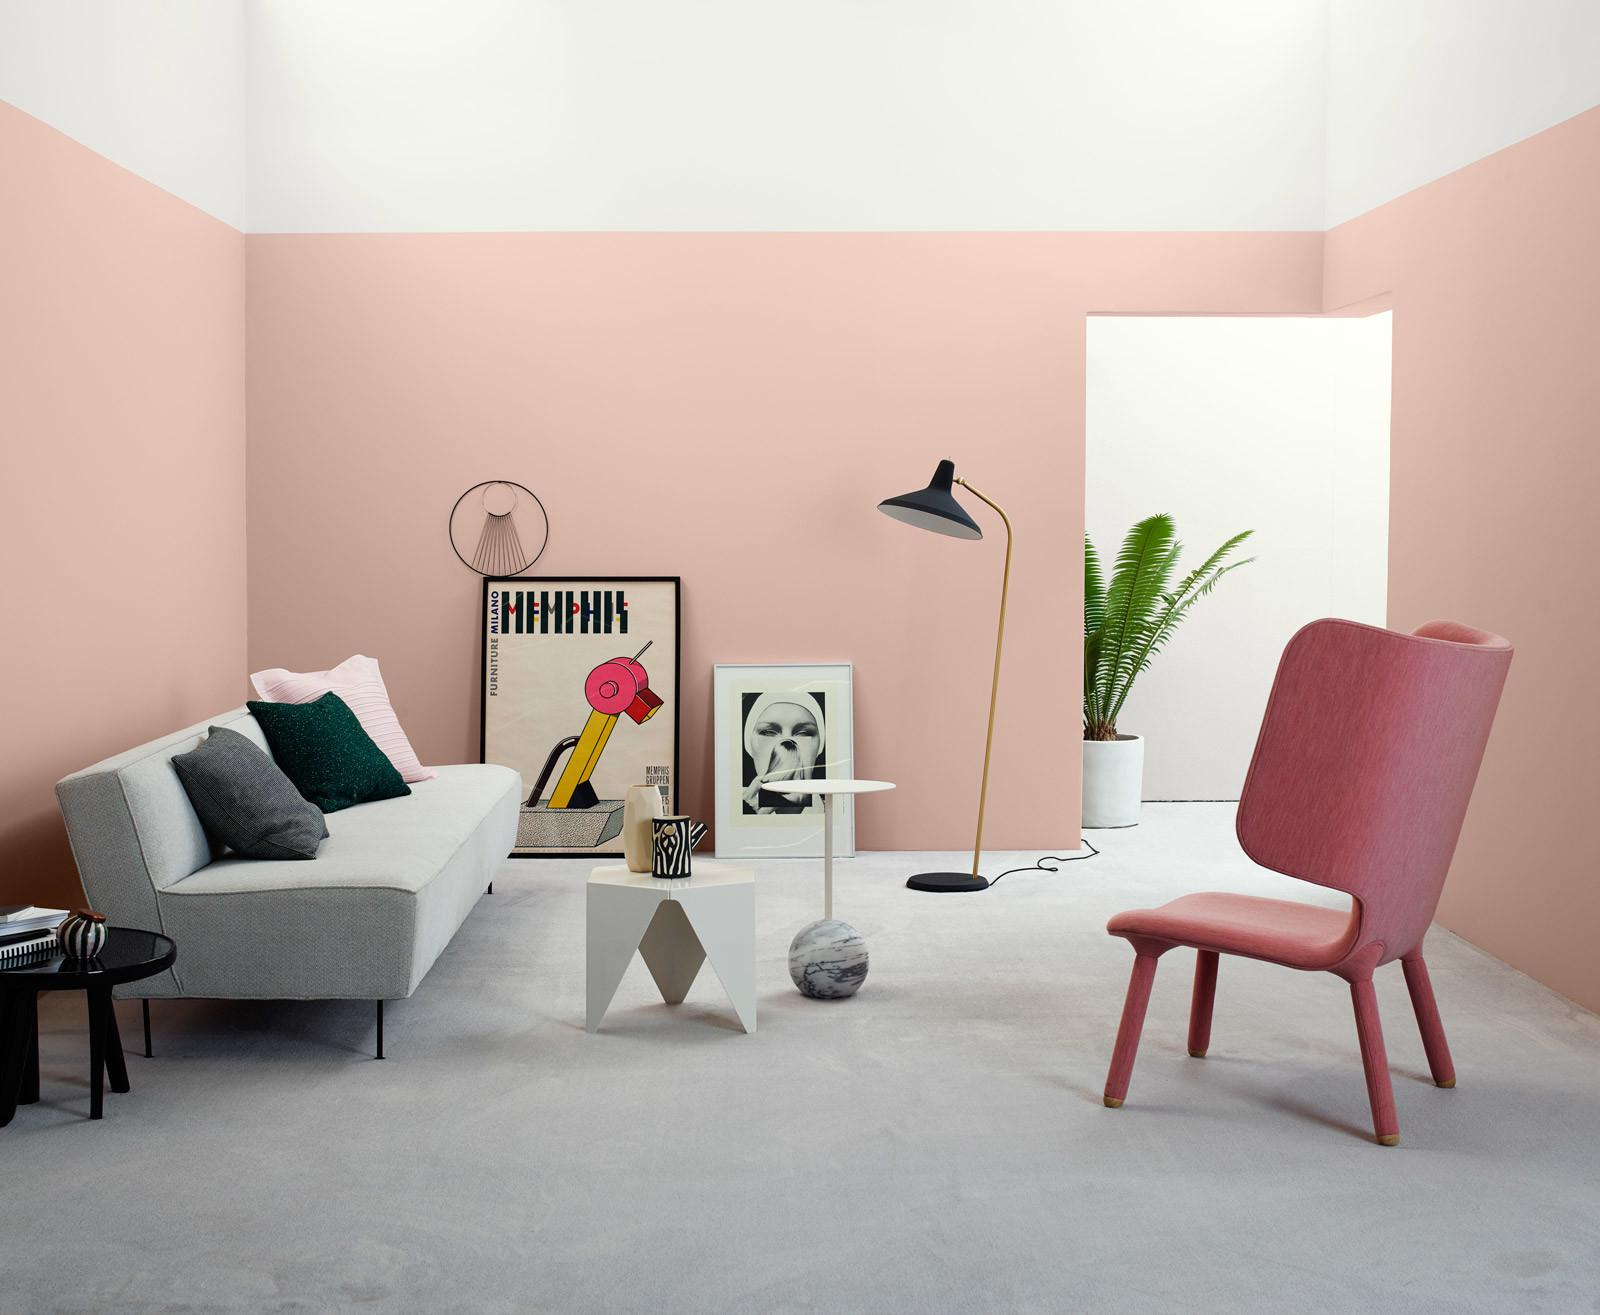 2017 Color Trends Your Home Interior According